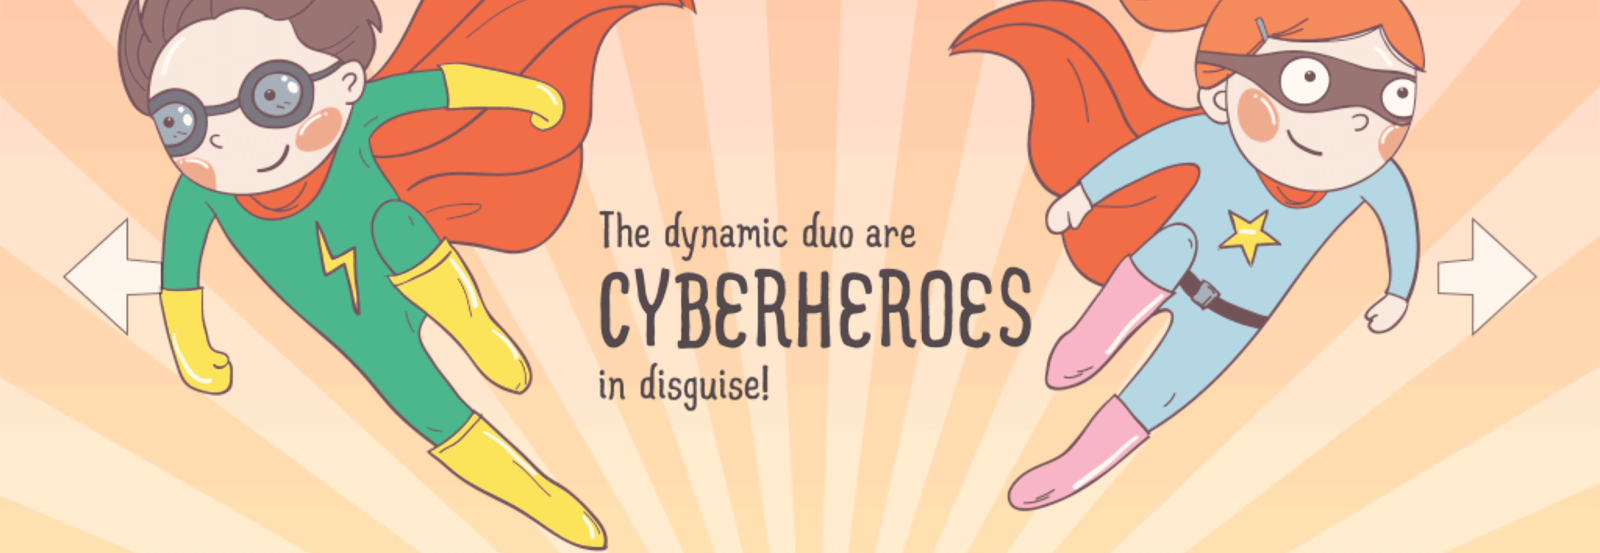 Cyberheroes graphic, featuring two flying superheroes